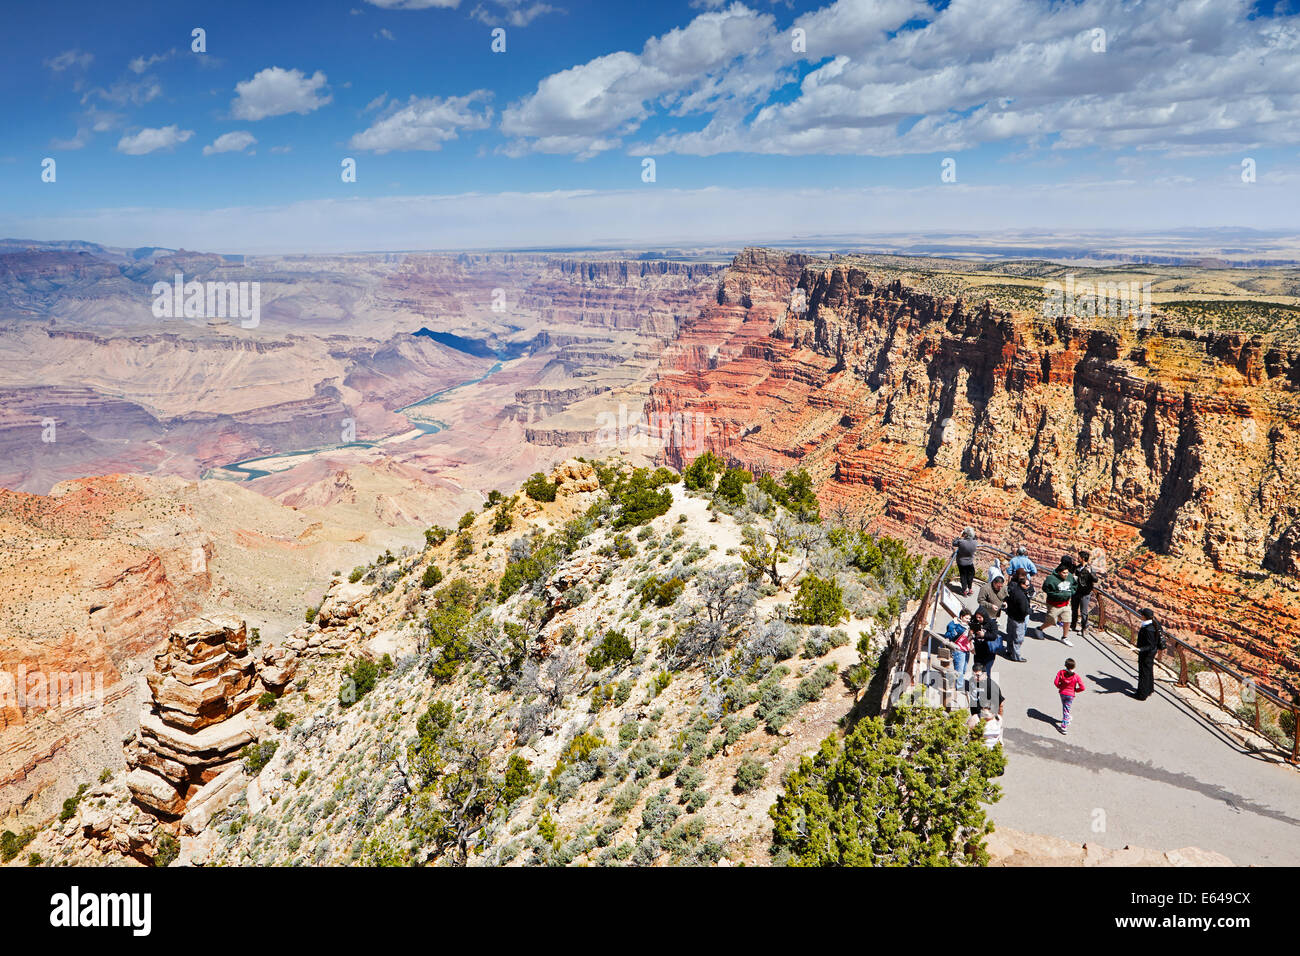 Scenic view of the Grand Canyon and Colorado river from the Grand Canyon South Rim. Arizona, USA. Stock Photo